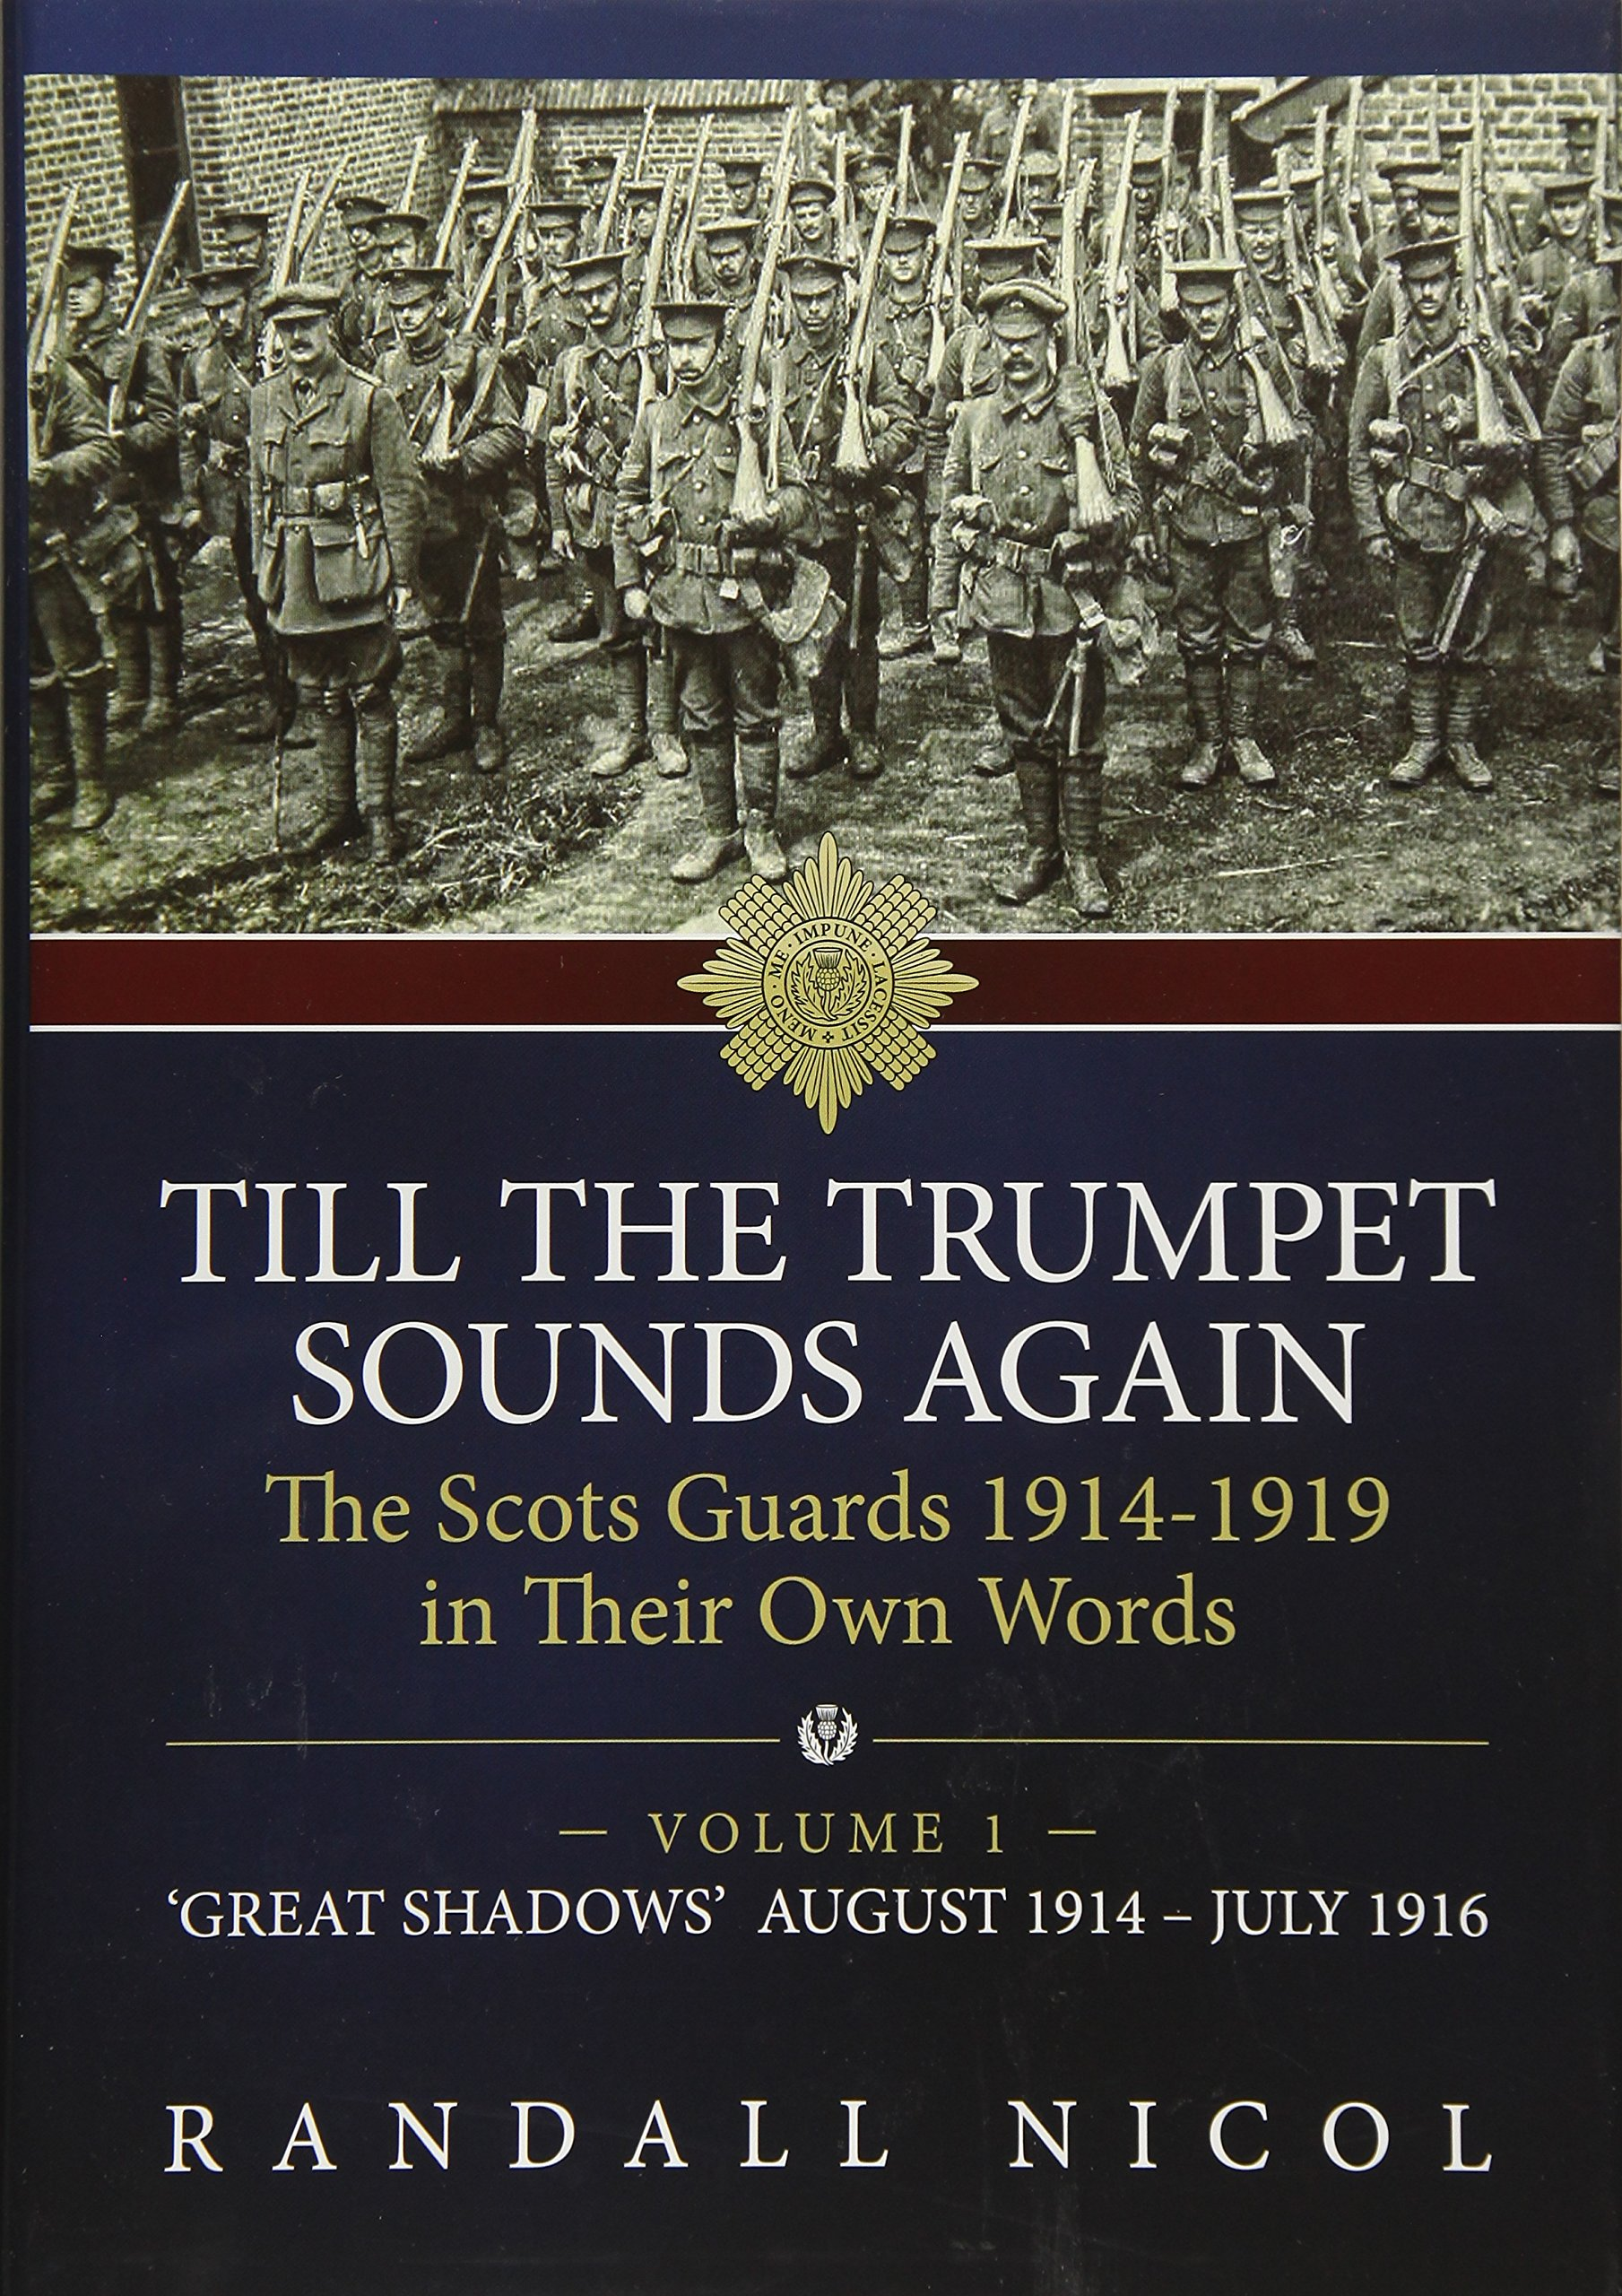 Till The Trumpet Sounds Again: The Scots Guards 1914-19 In Their Own Words. Volume 1: 'Great Shadows', August 1914 – July 1916